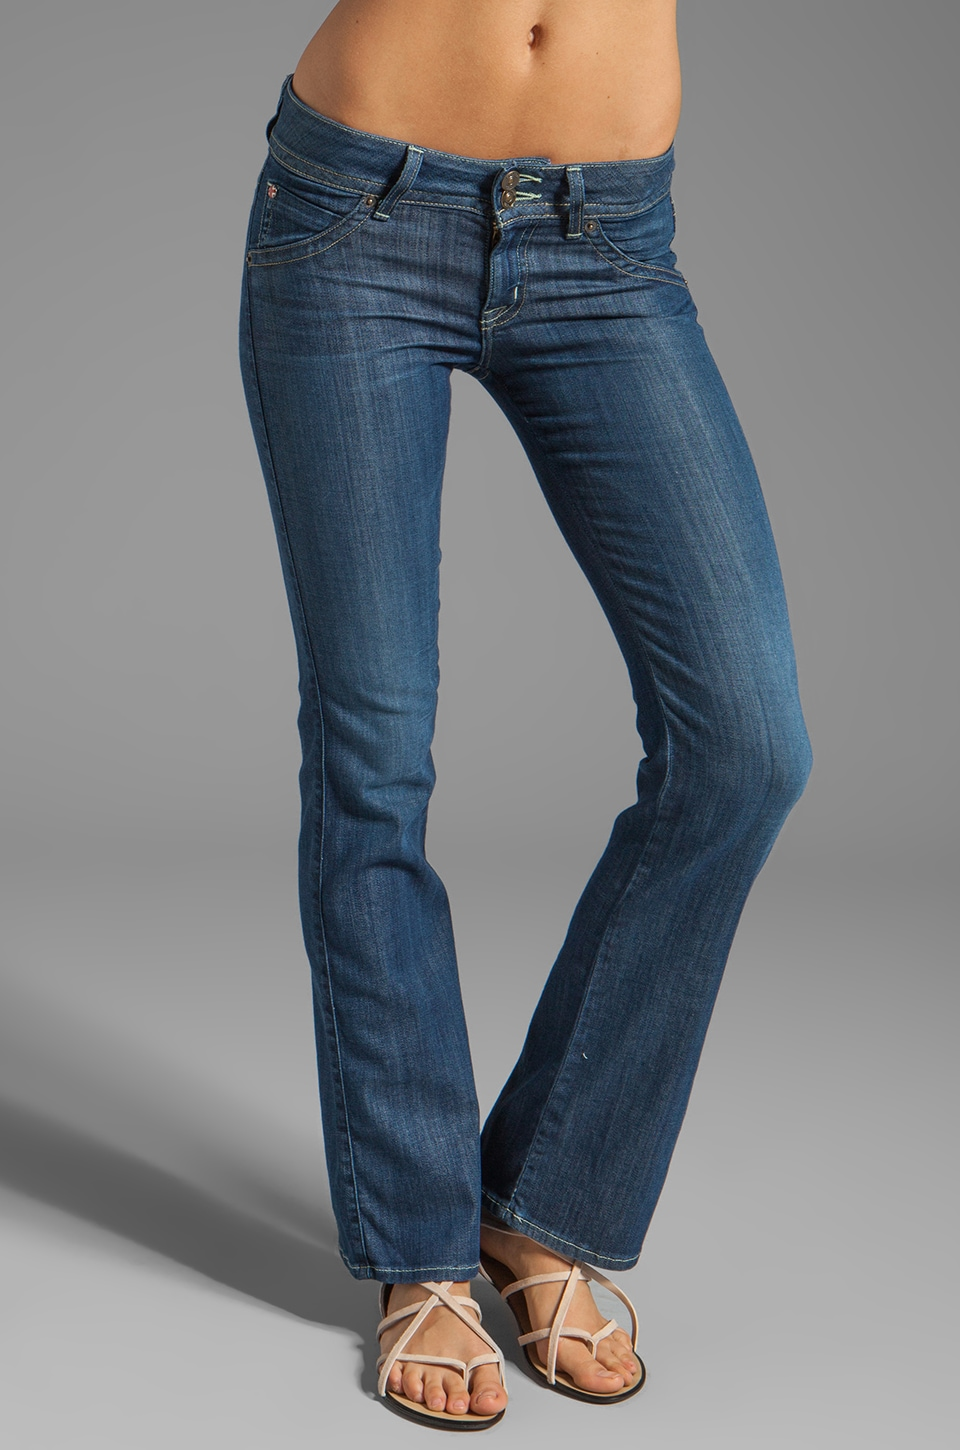 Hudson Jeans Petite Boot Cut in Edan